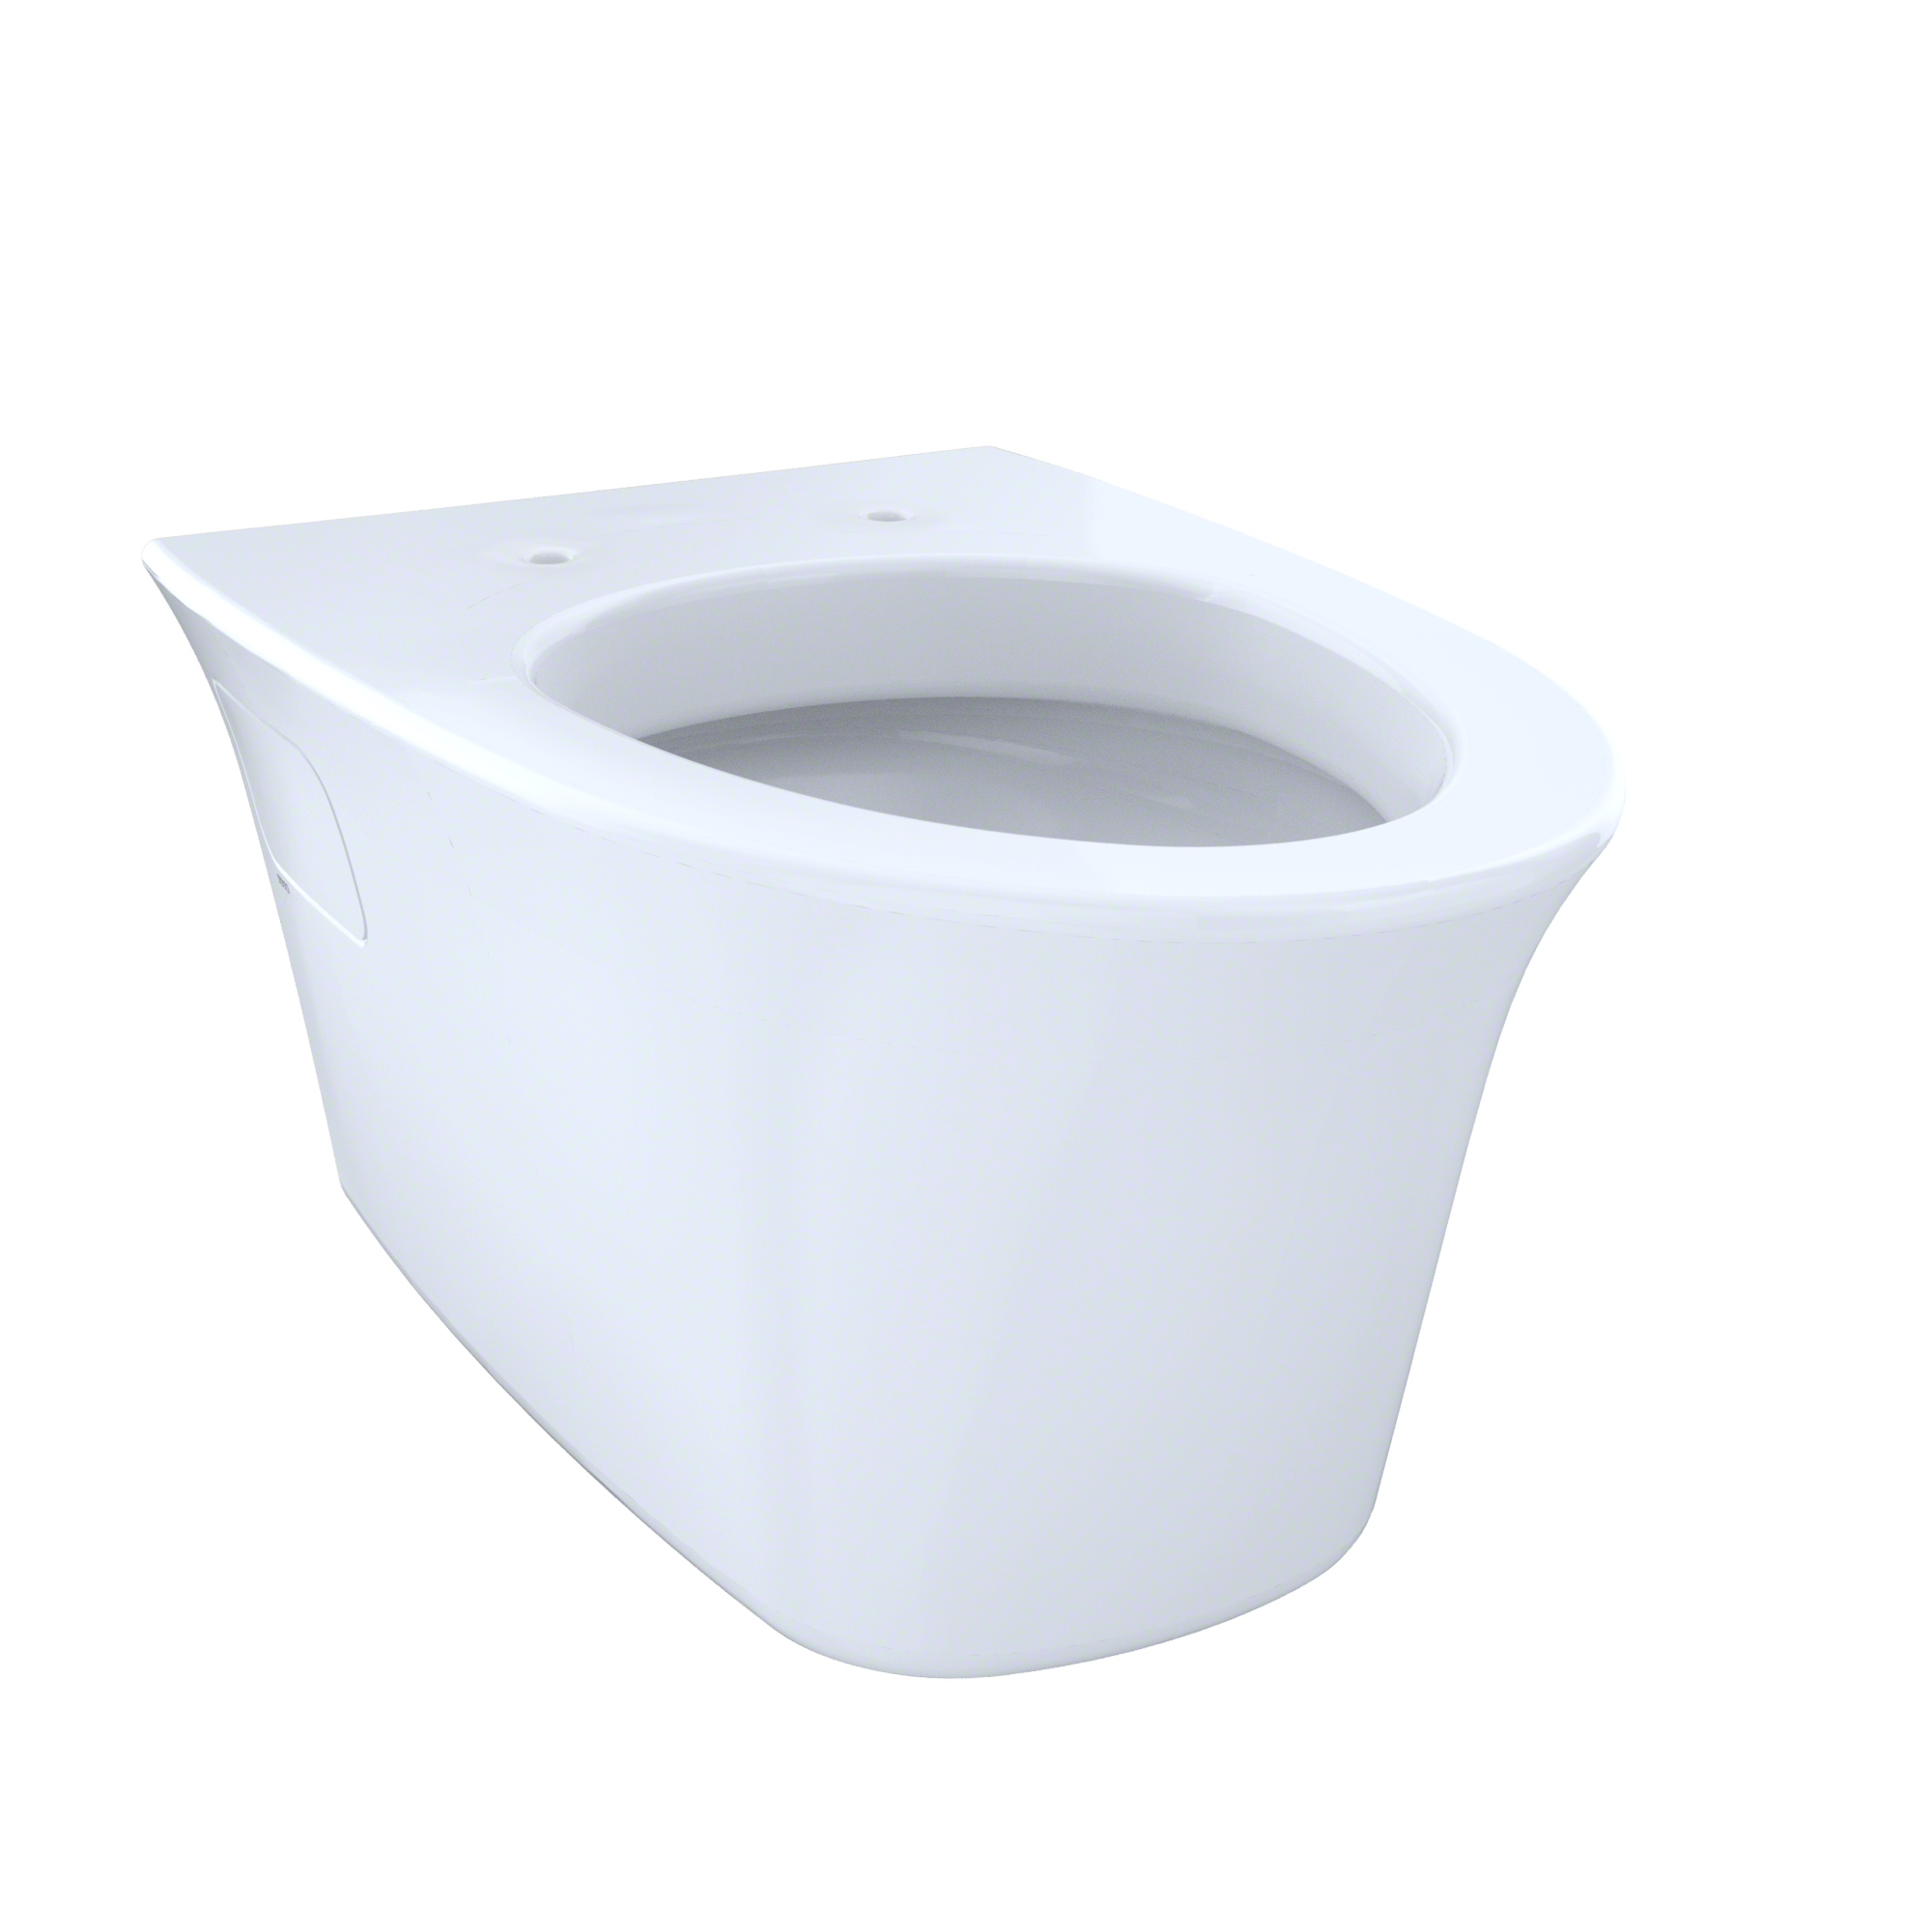 TOTO® Maris® Wall-Hung Elongated Toilet Bowl with Skirted Design and CeFiONtect™, Cotton White - CT486FG#01